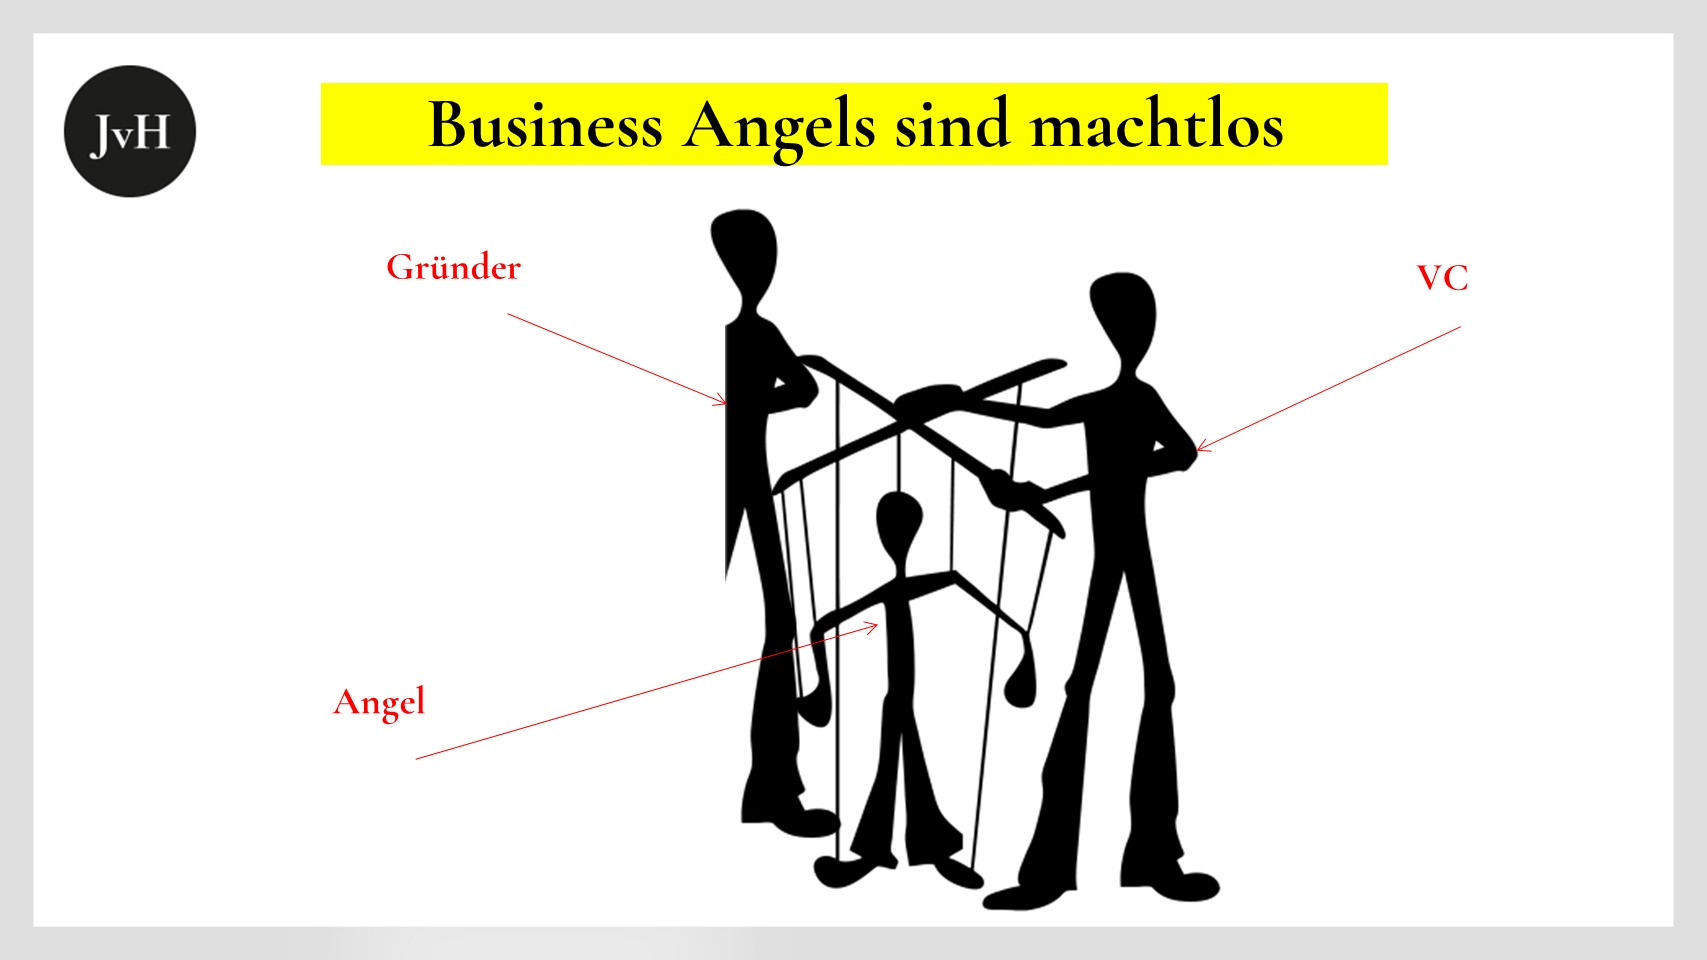 Puppet-Play-Figure-symbolizing-the-weak-role-of-business-angels